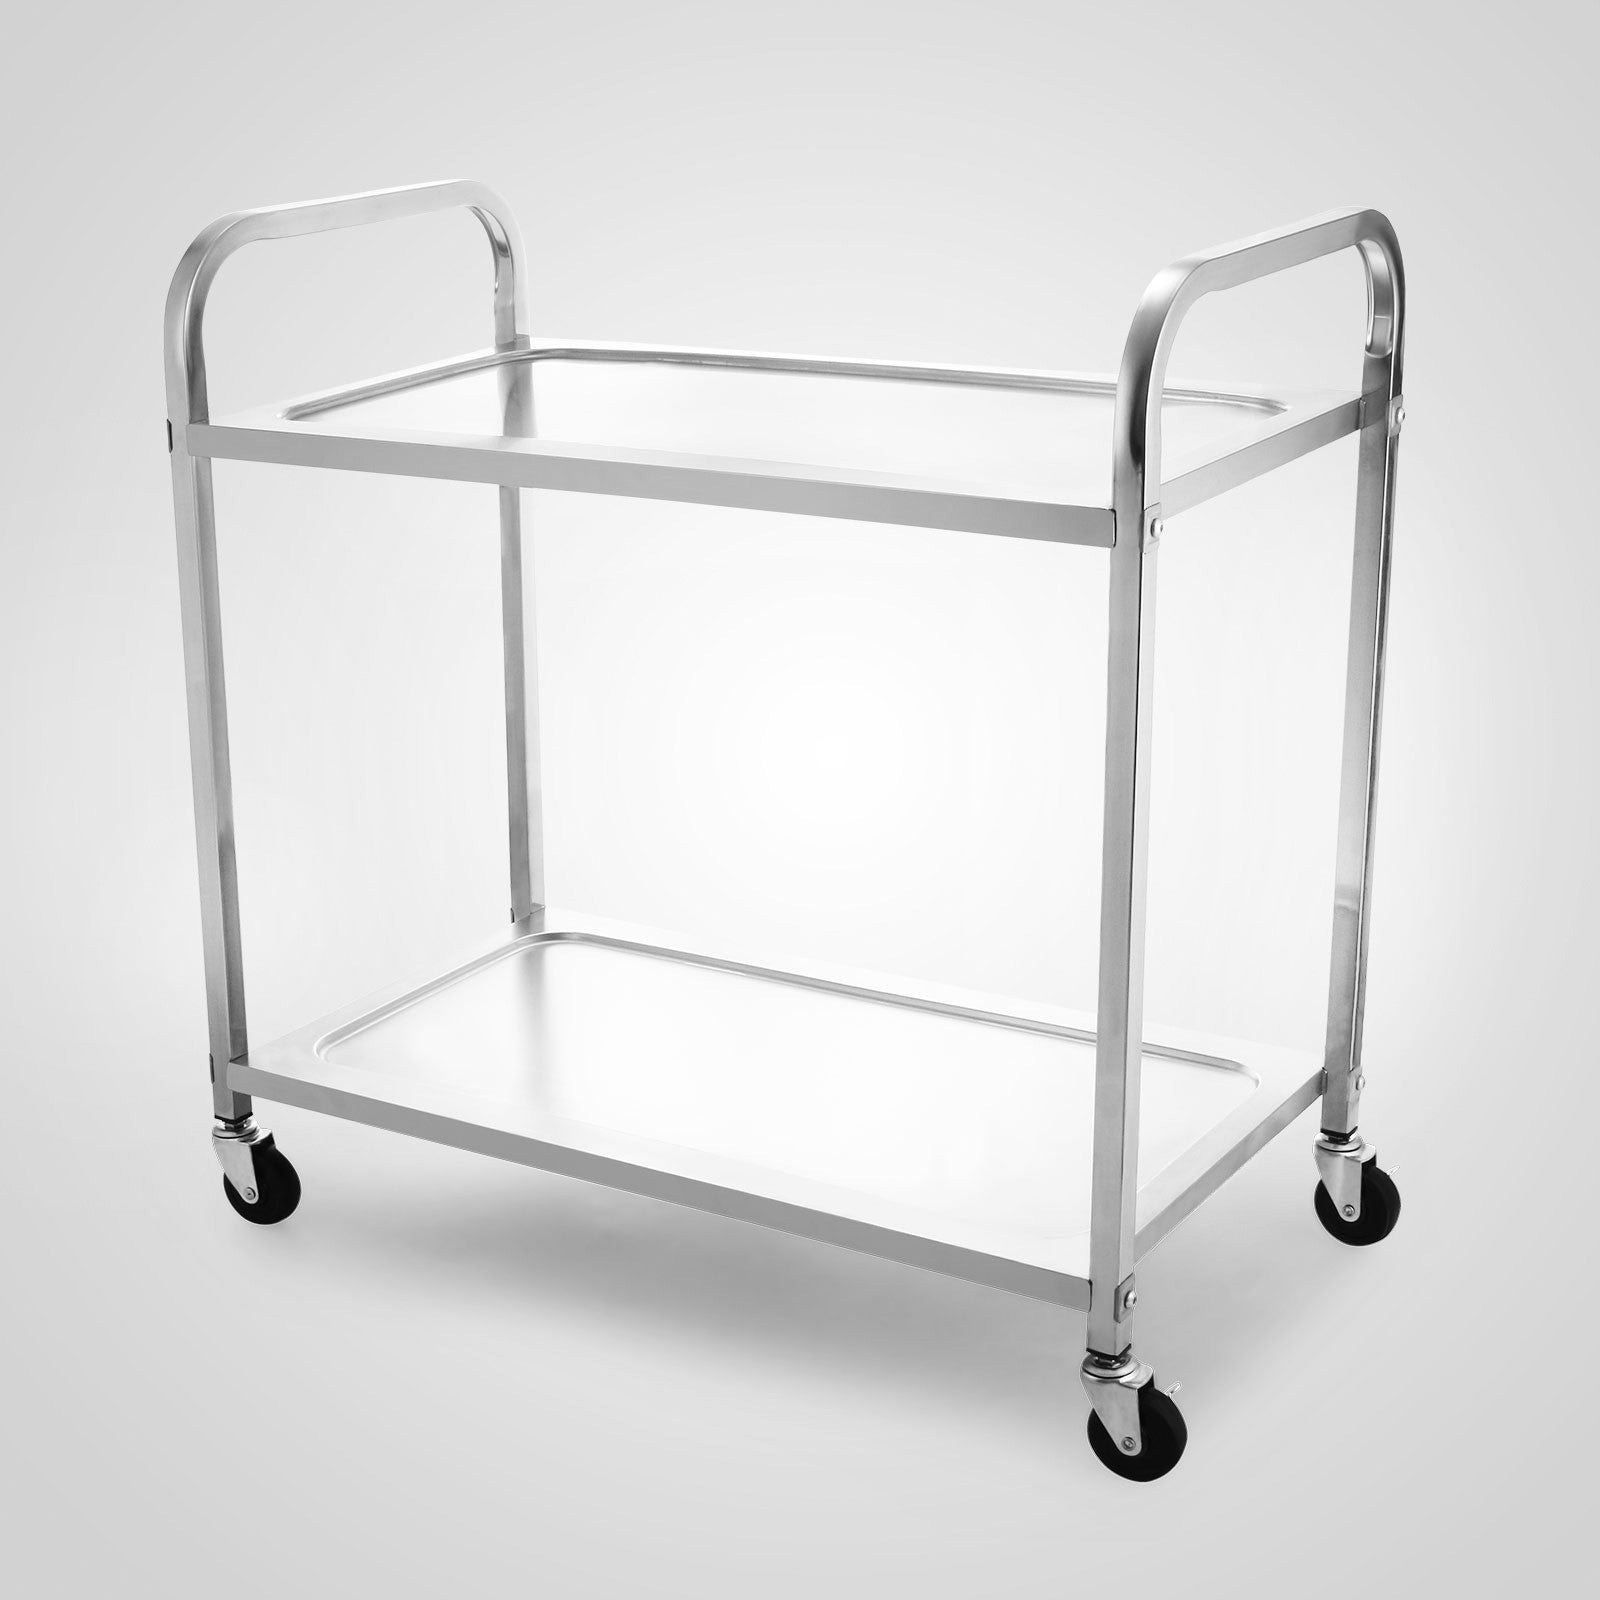 Catering Kitchen Serving Trolley Cart Stainless Steel 2 Tier Storage Shelf Dolly